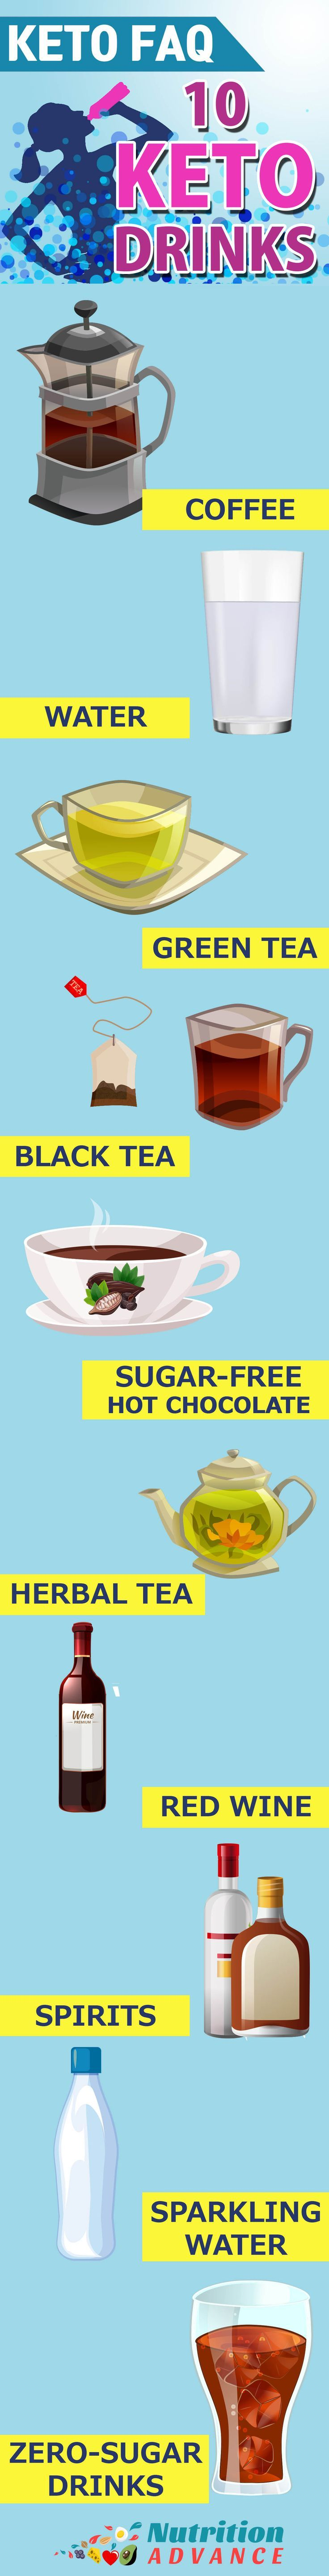 What Drinks Are Keto? This infographic shows 10 of the best low carb drinks suitable for a ketogenic diet including coffee, water, green tea, black tea, sugar-free hot chocolate, herbal tea, red wine, spirits, sparkling water and zero-sugar soft drinks. This is from the Keto FAQ article - to read more about keto drinks and see many more frequently asked questions on the keto diet, see the full article at: http://nutritionadvance.com/low-carb/keto